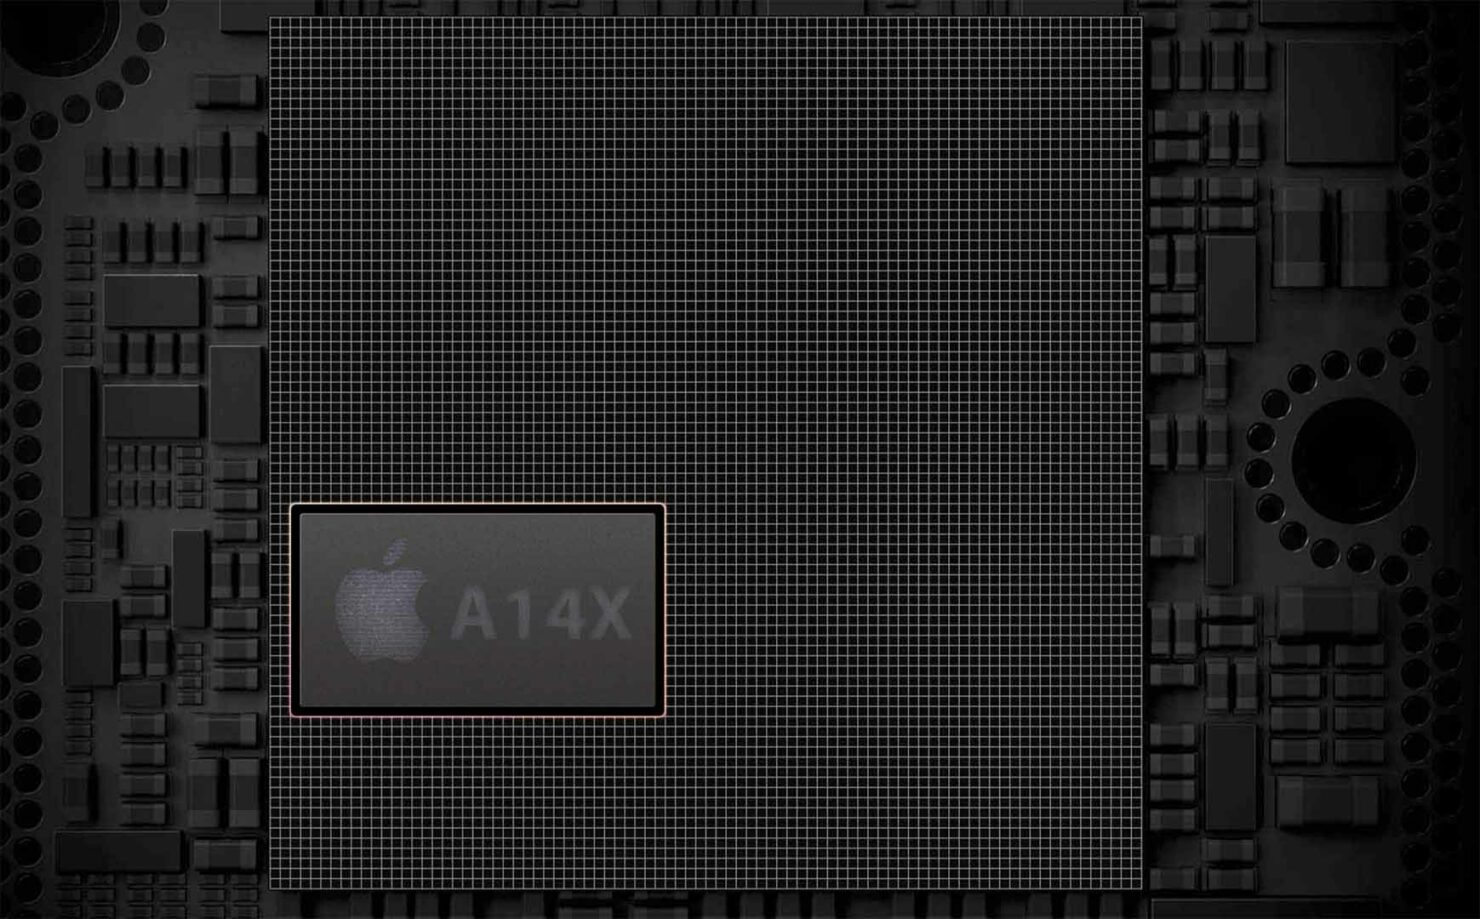 Apple's A14X Bionic, Codenamed 'Tonga' Will Reportedly Be Found in Both the 12-inch MacBook and New iPad Pro Models